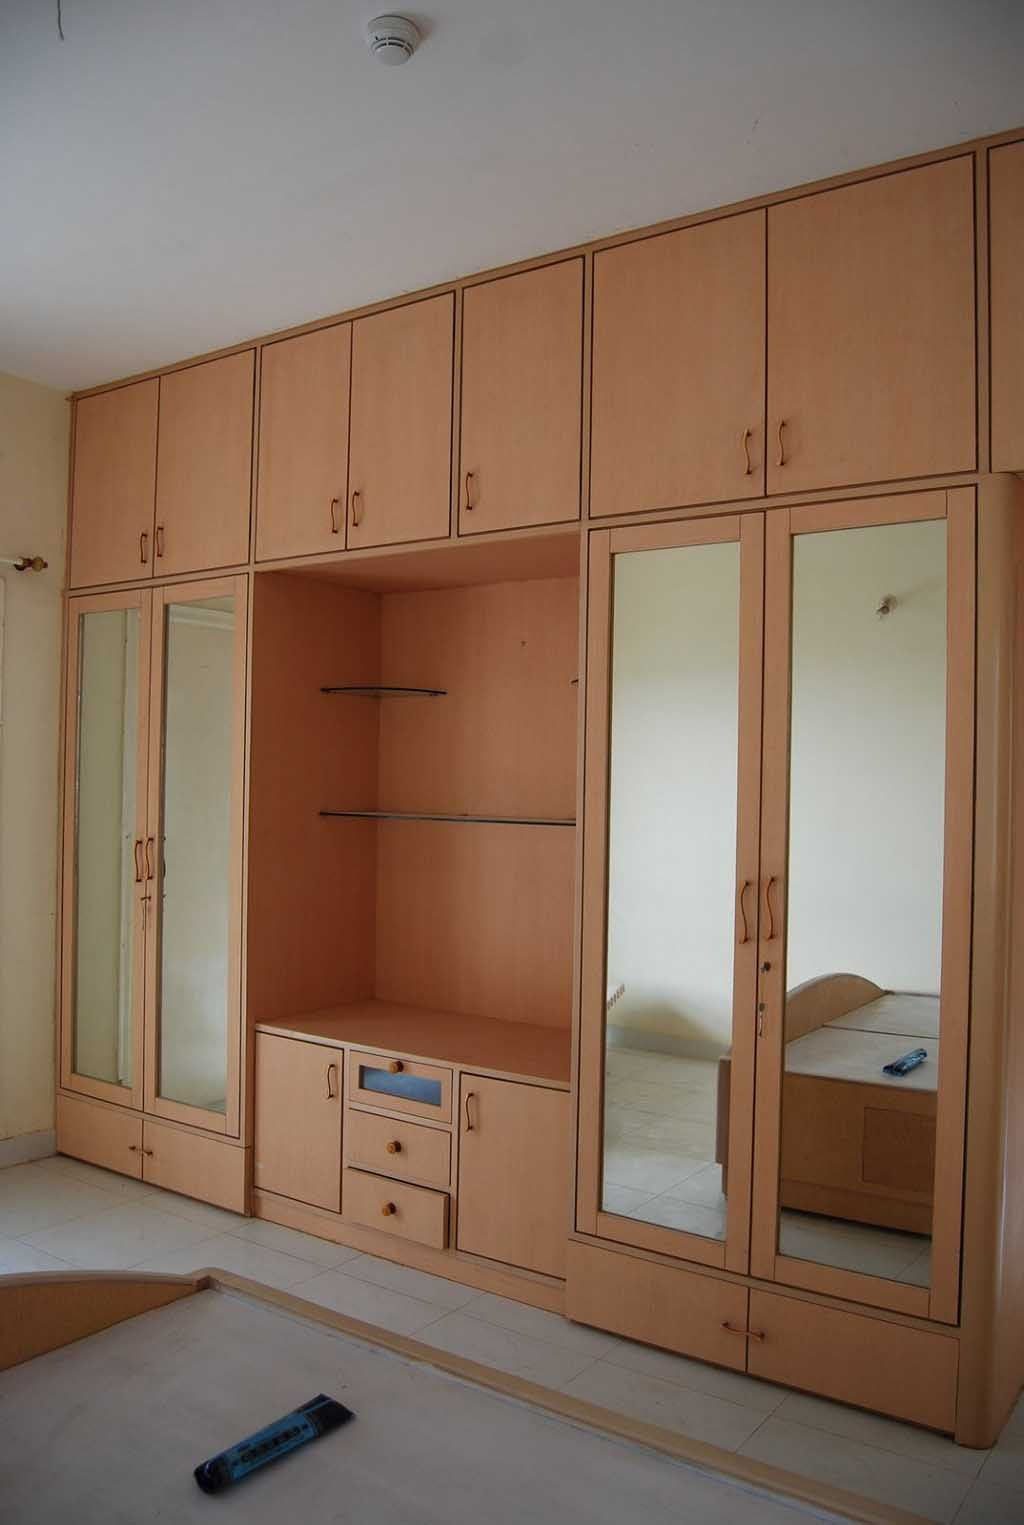 24 Popular Bedroom Cabinets Design This Year Wooden Bedroom Cupboard Designs With Modern Style Cupboard Design Bedroom Closet Design Bedroom Cupboard Designs